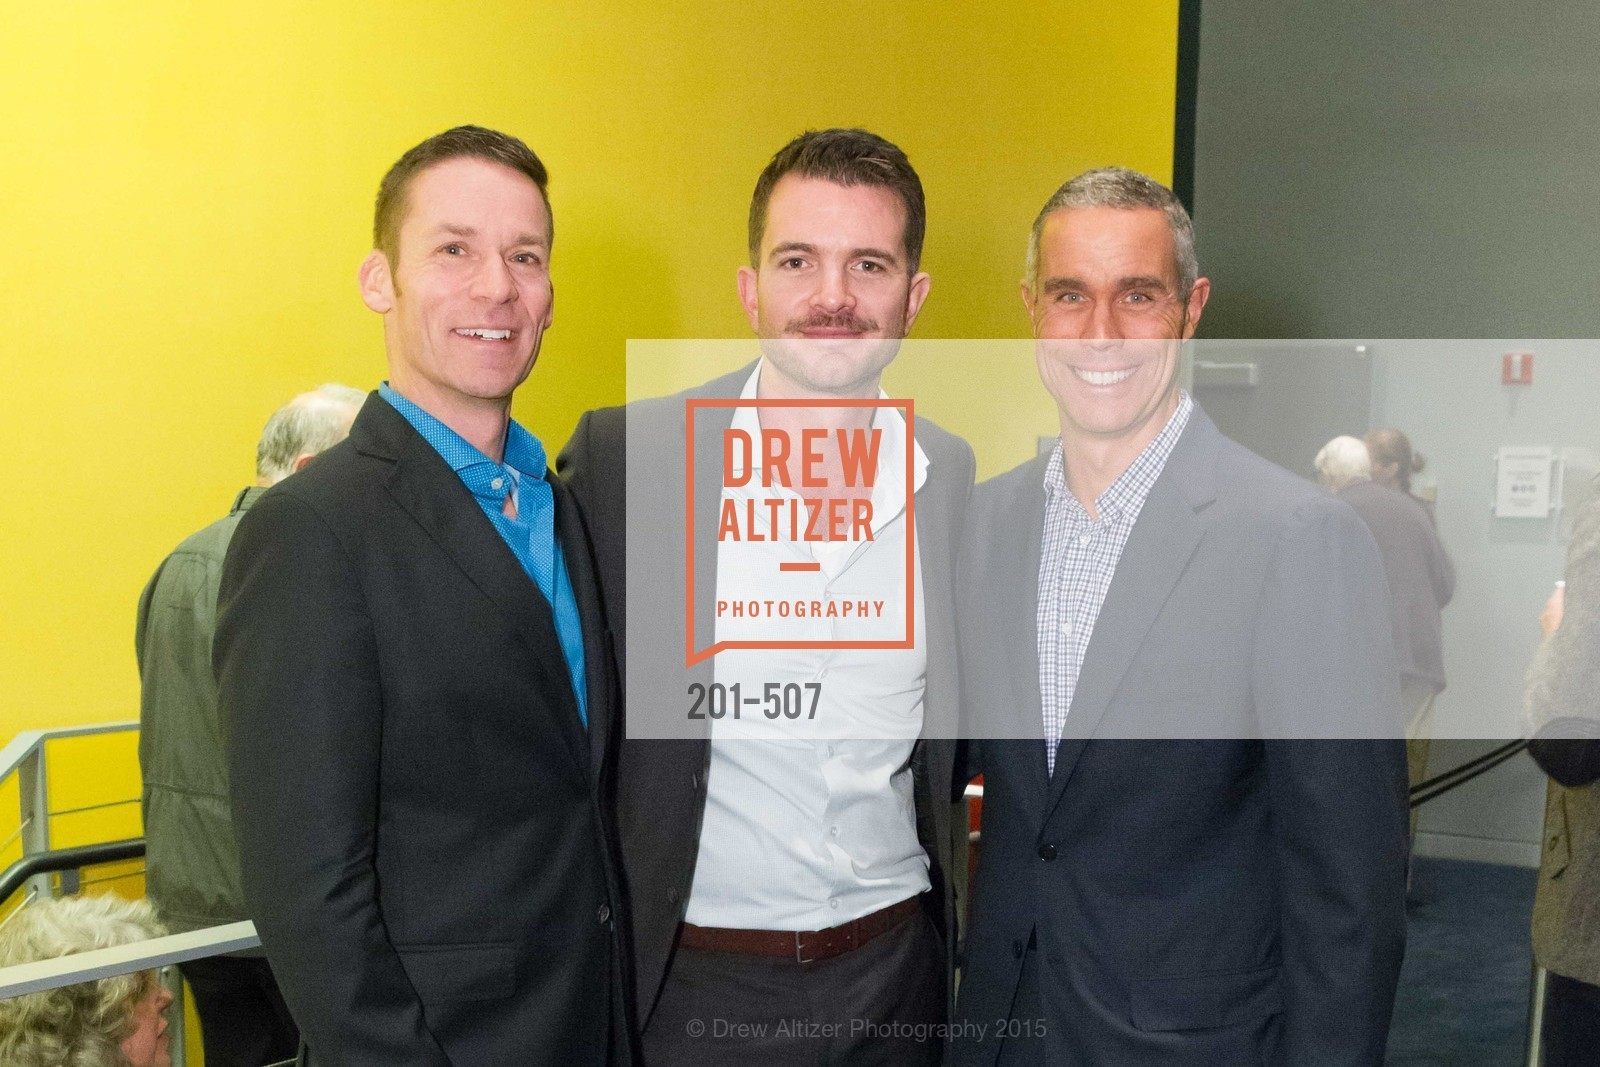 Andres Weidler, Brad Hock, Daniel Veetch, Cancer Prevention Institute of California Presents DanceFAR, YBCA Theatre and Forum. 701 Mission Street, November 10th, 2015,Drew Altizer, Drew Altizer Photography, full-service event agency, private events, San Francisco photographer, photographer California